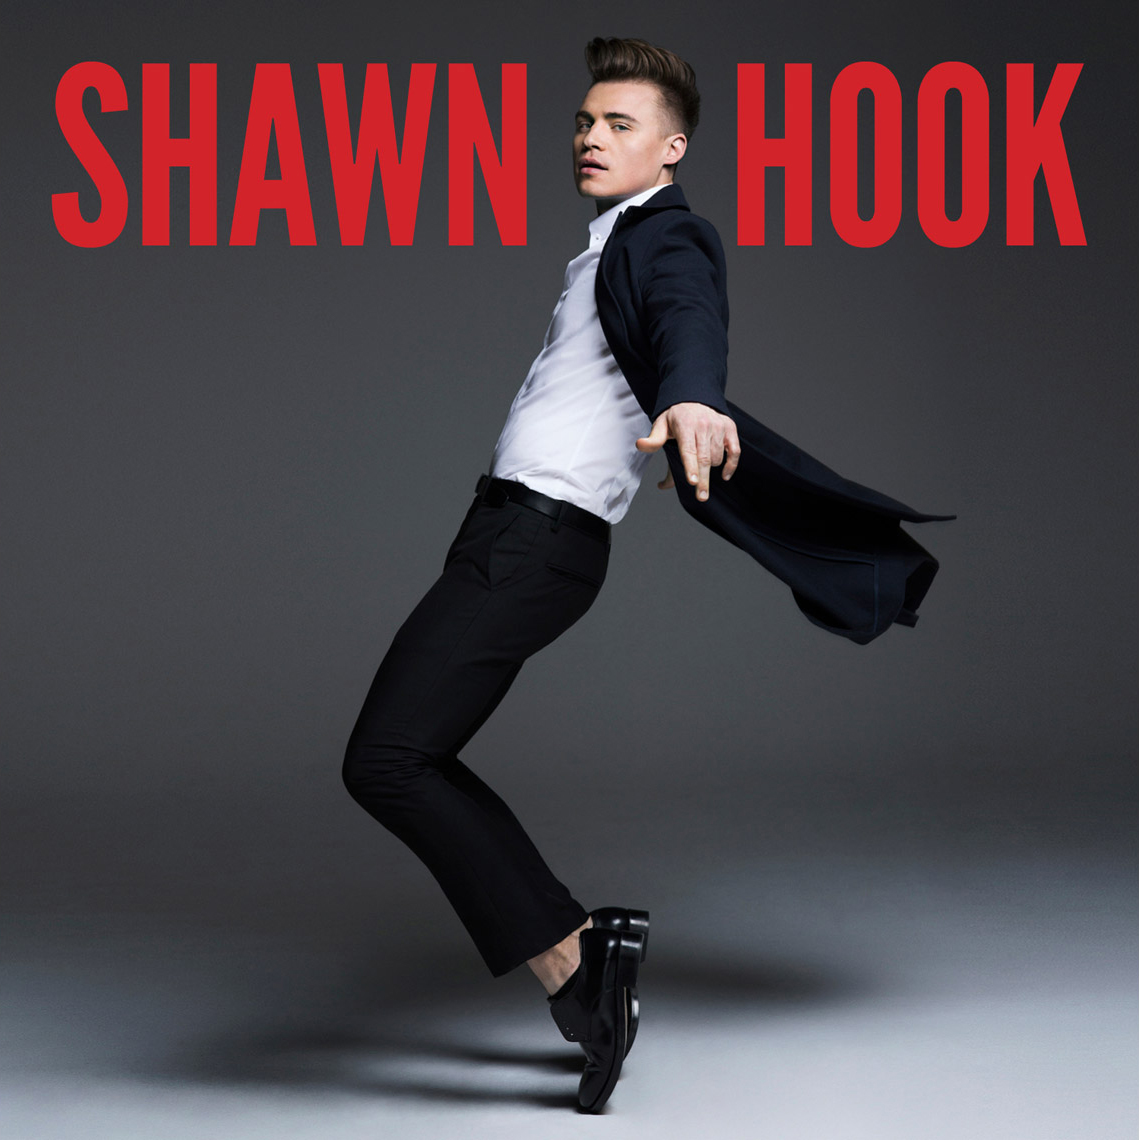 Celebrity Photographer Michael Schwartz: Shawn Hook album cover